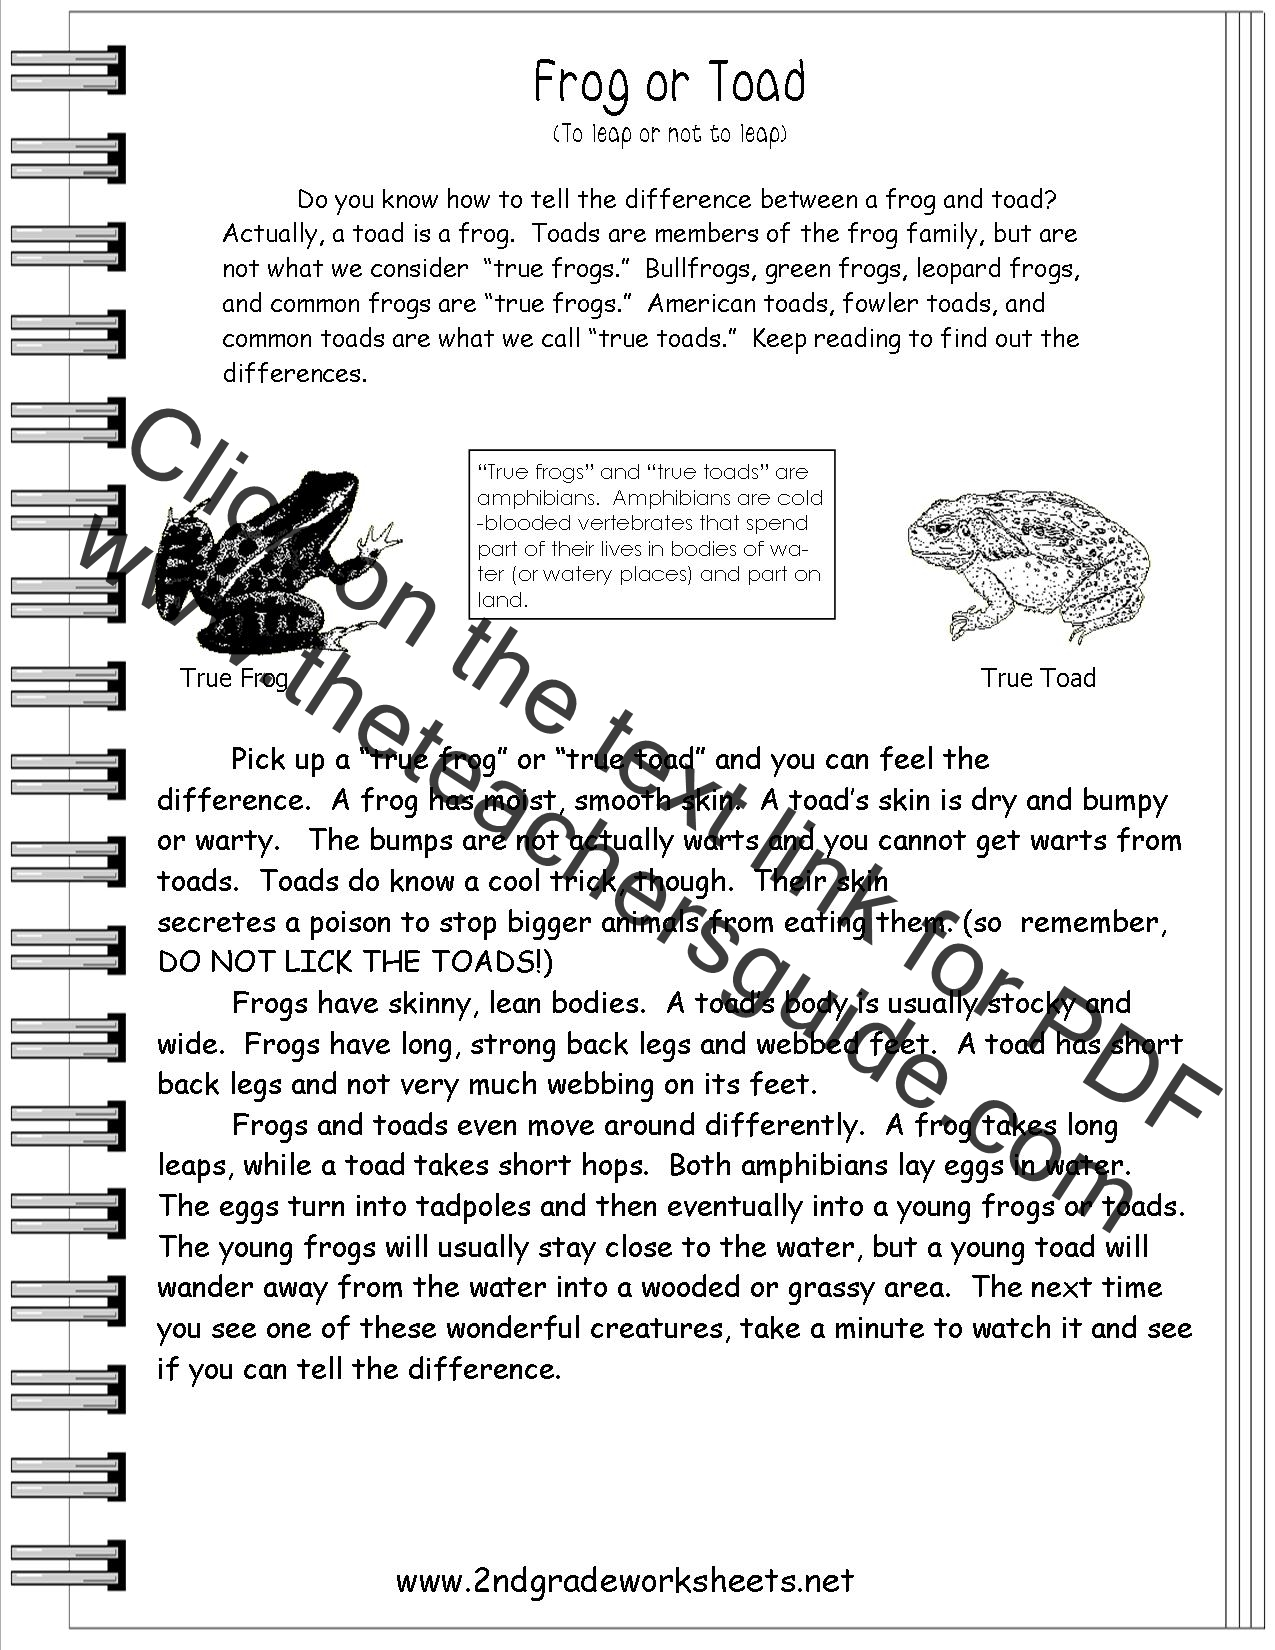 Worksheet Fiction And Nonfiction Worksheets Worksheet